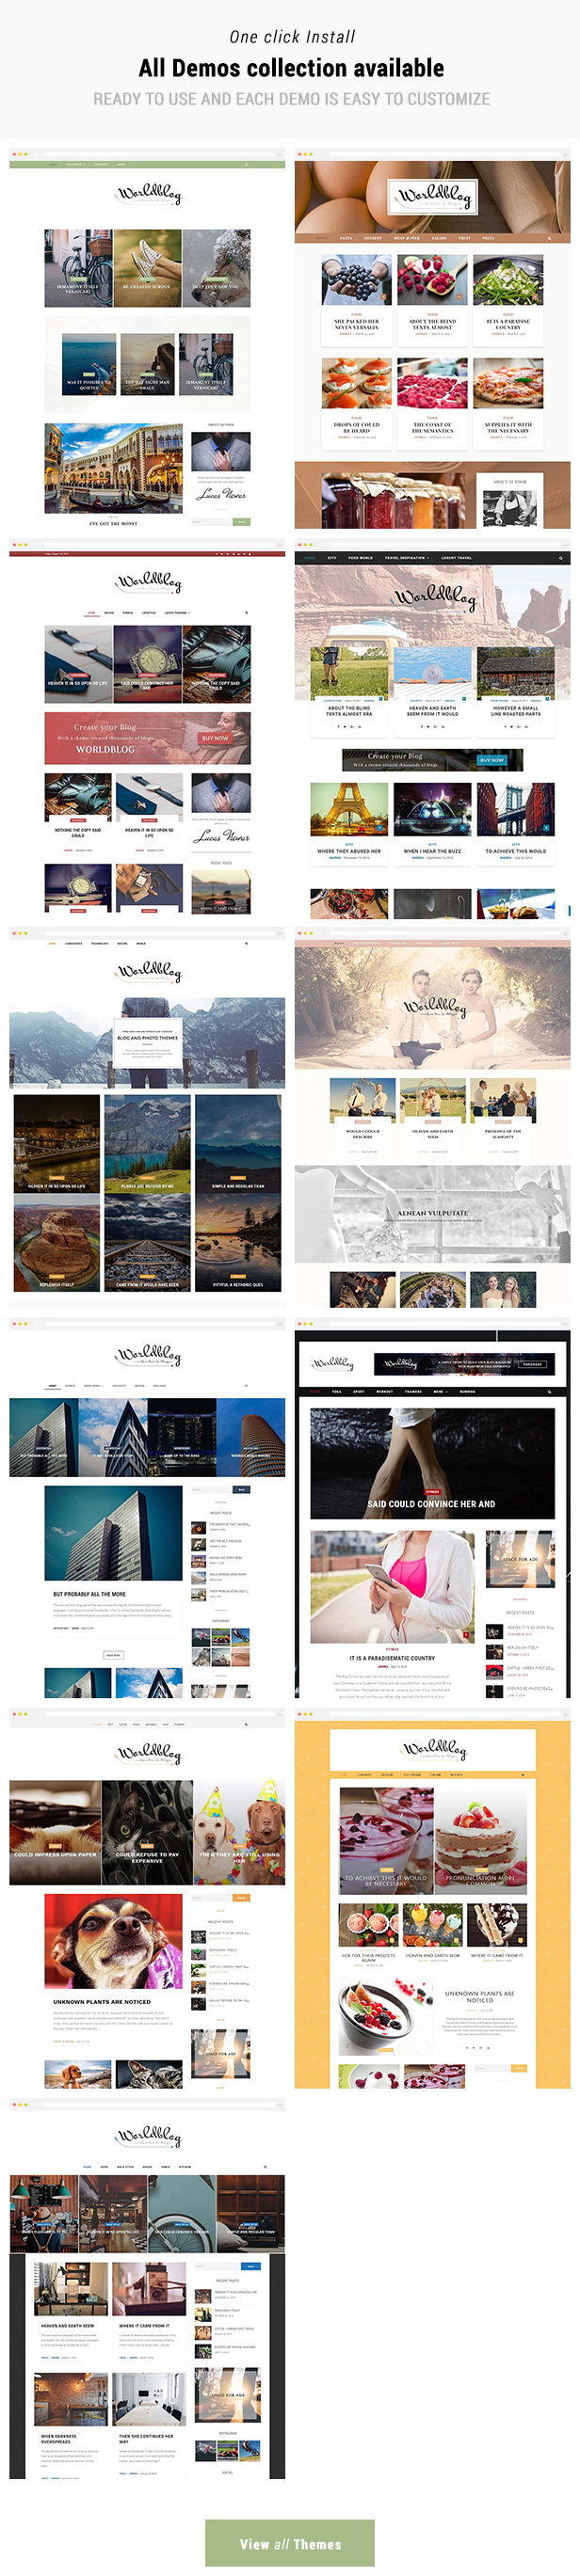 Worldblog - WordPress Blog and Magazine Theme - 3